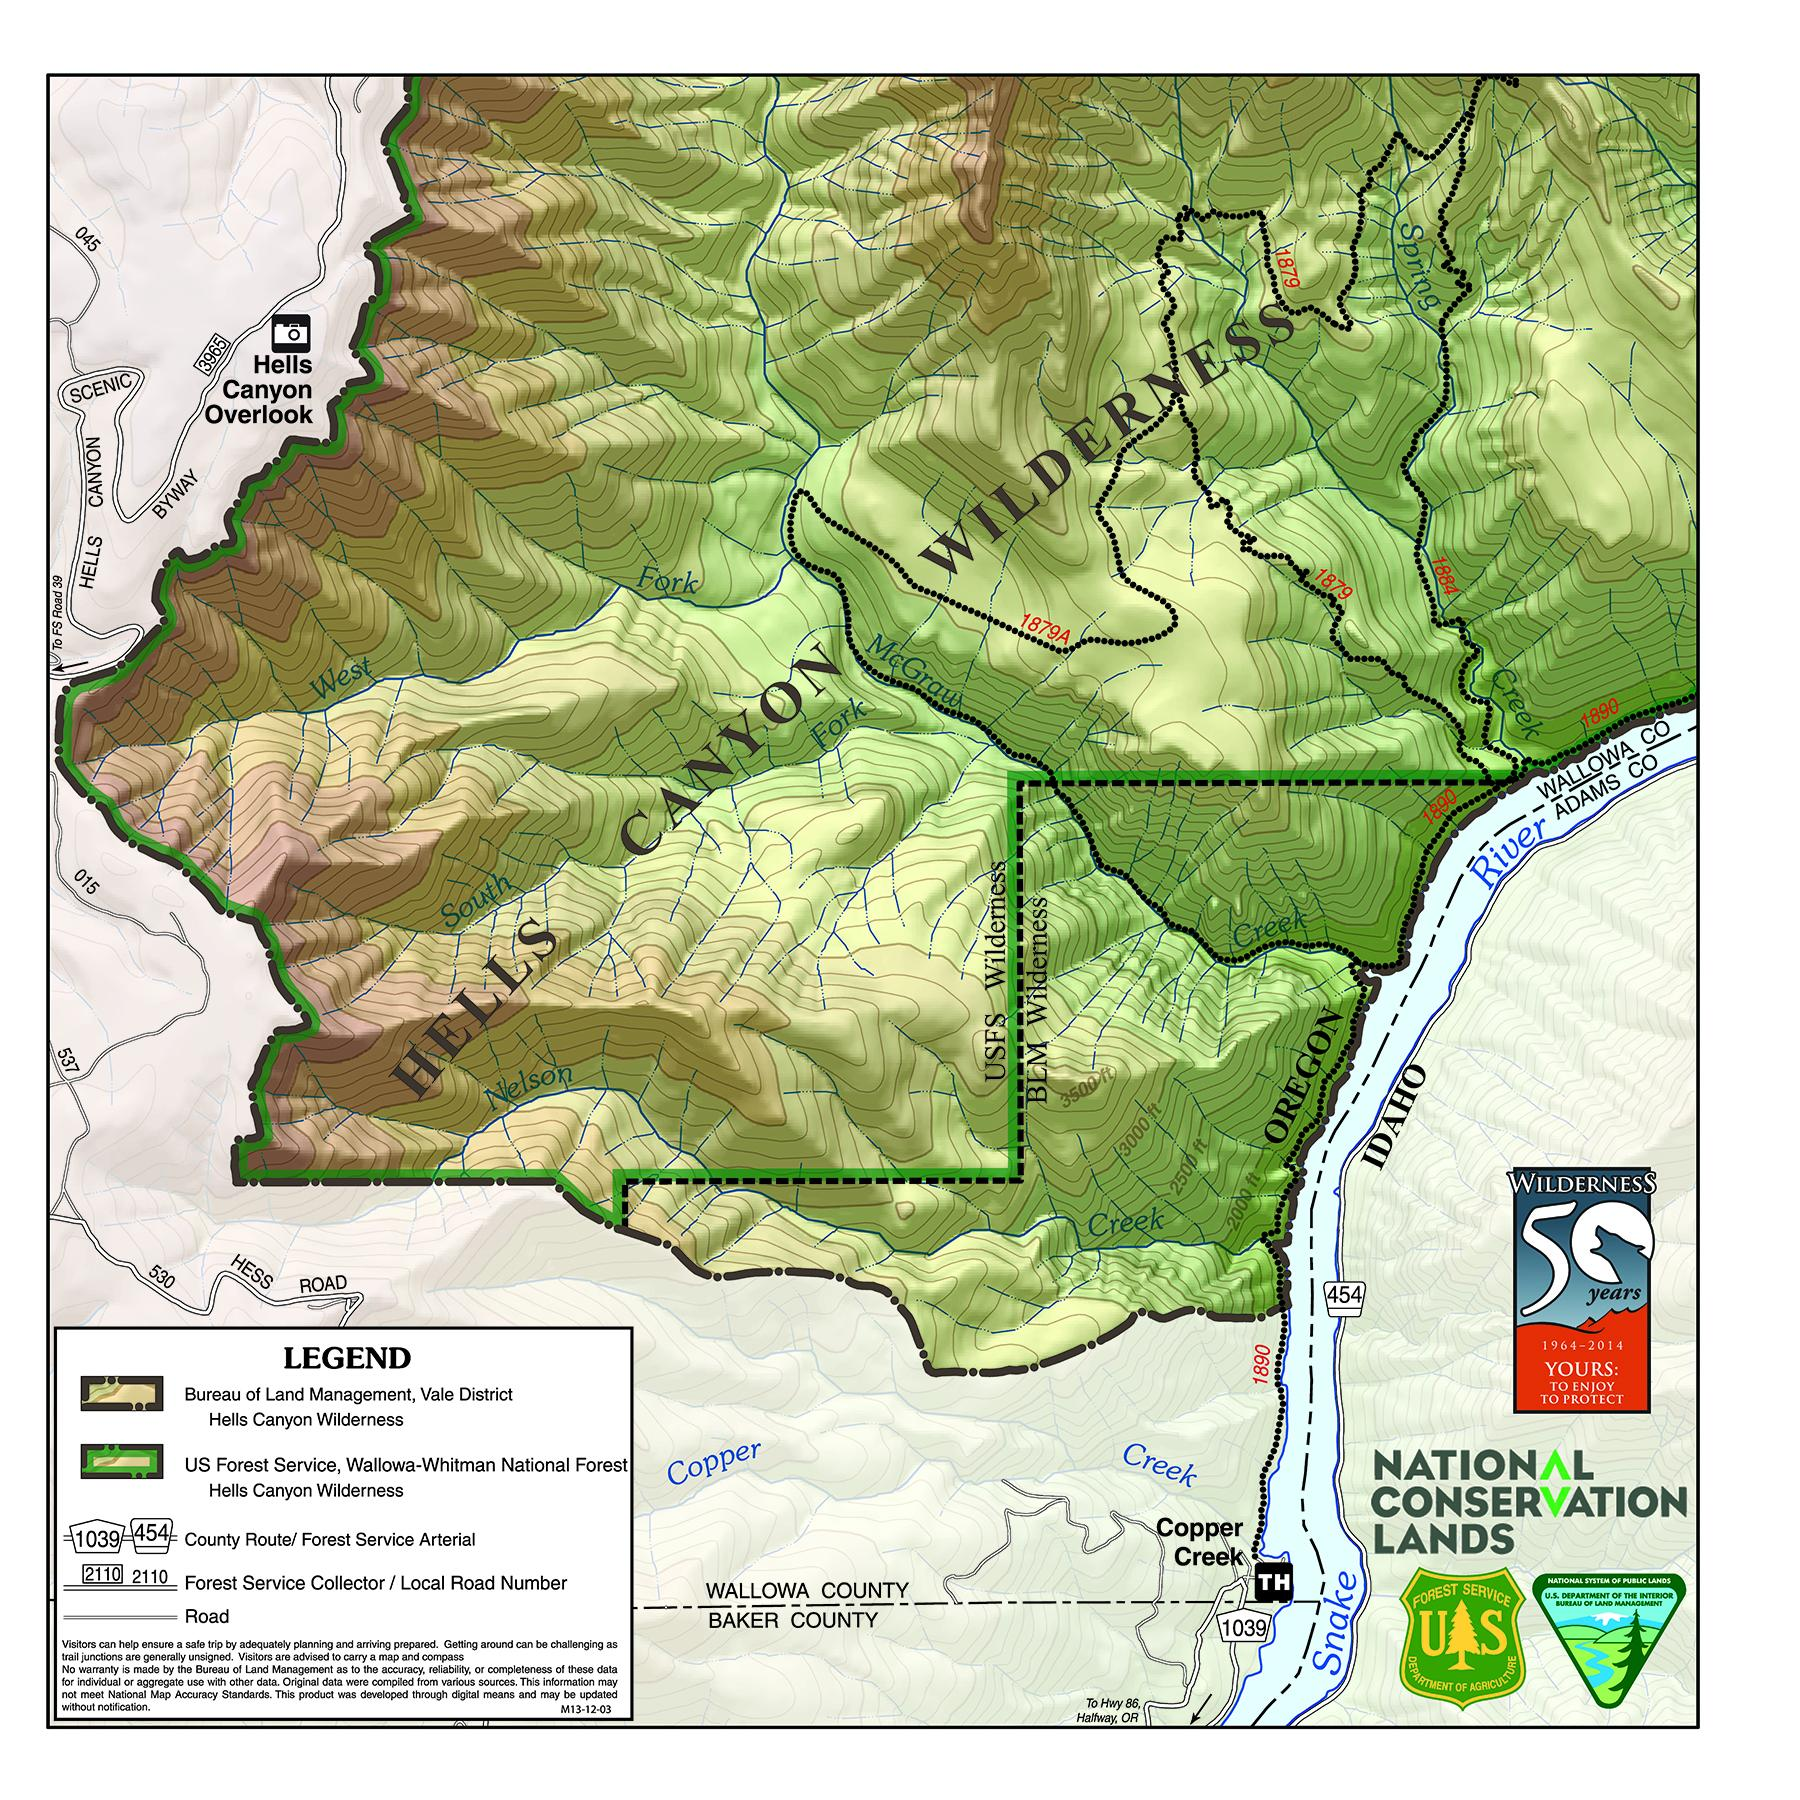 ExplOregon And Washington Too With Help Of BLM Maps KVAL - Us forest service road maps